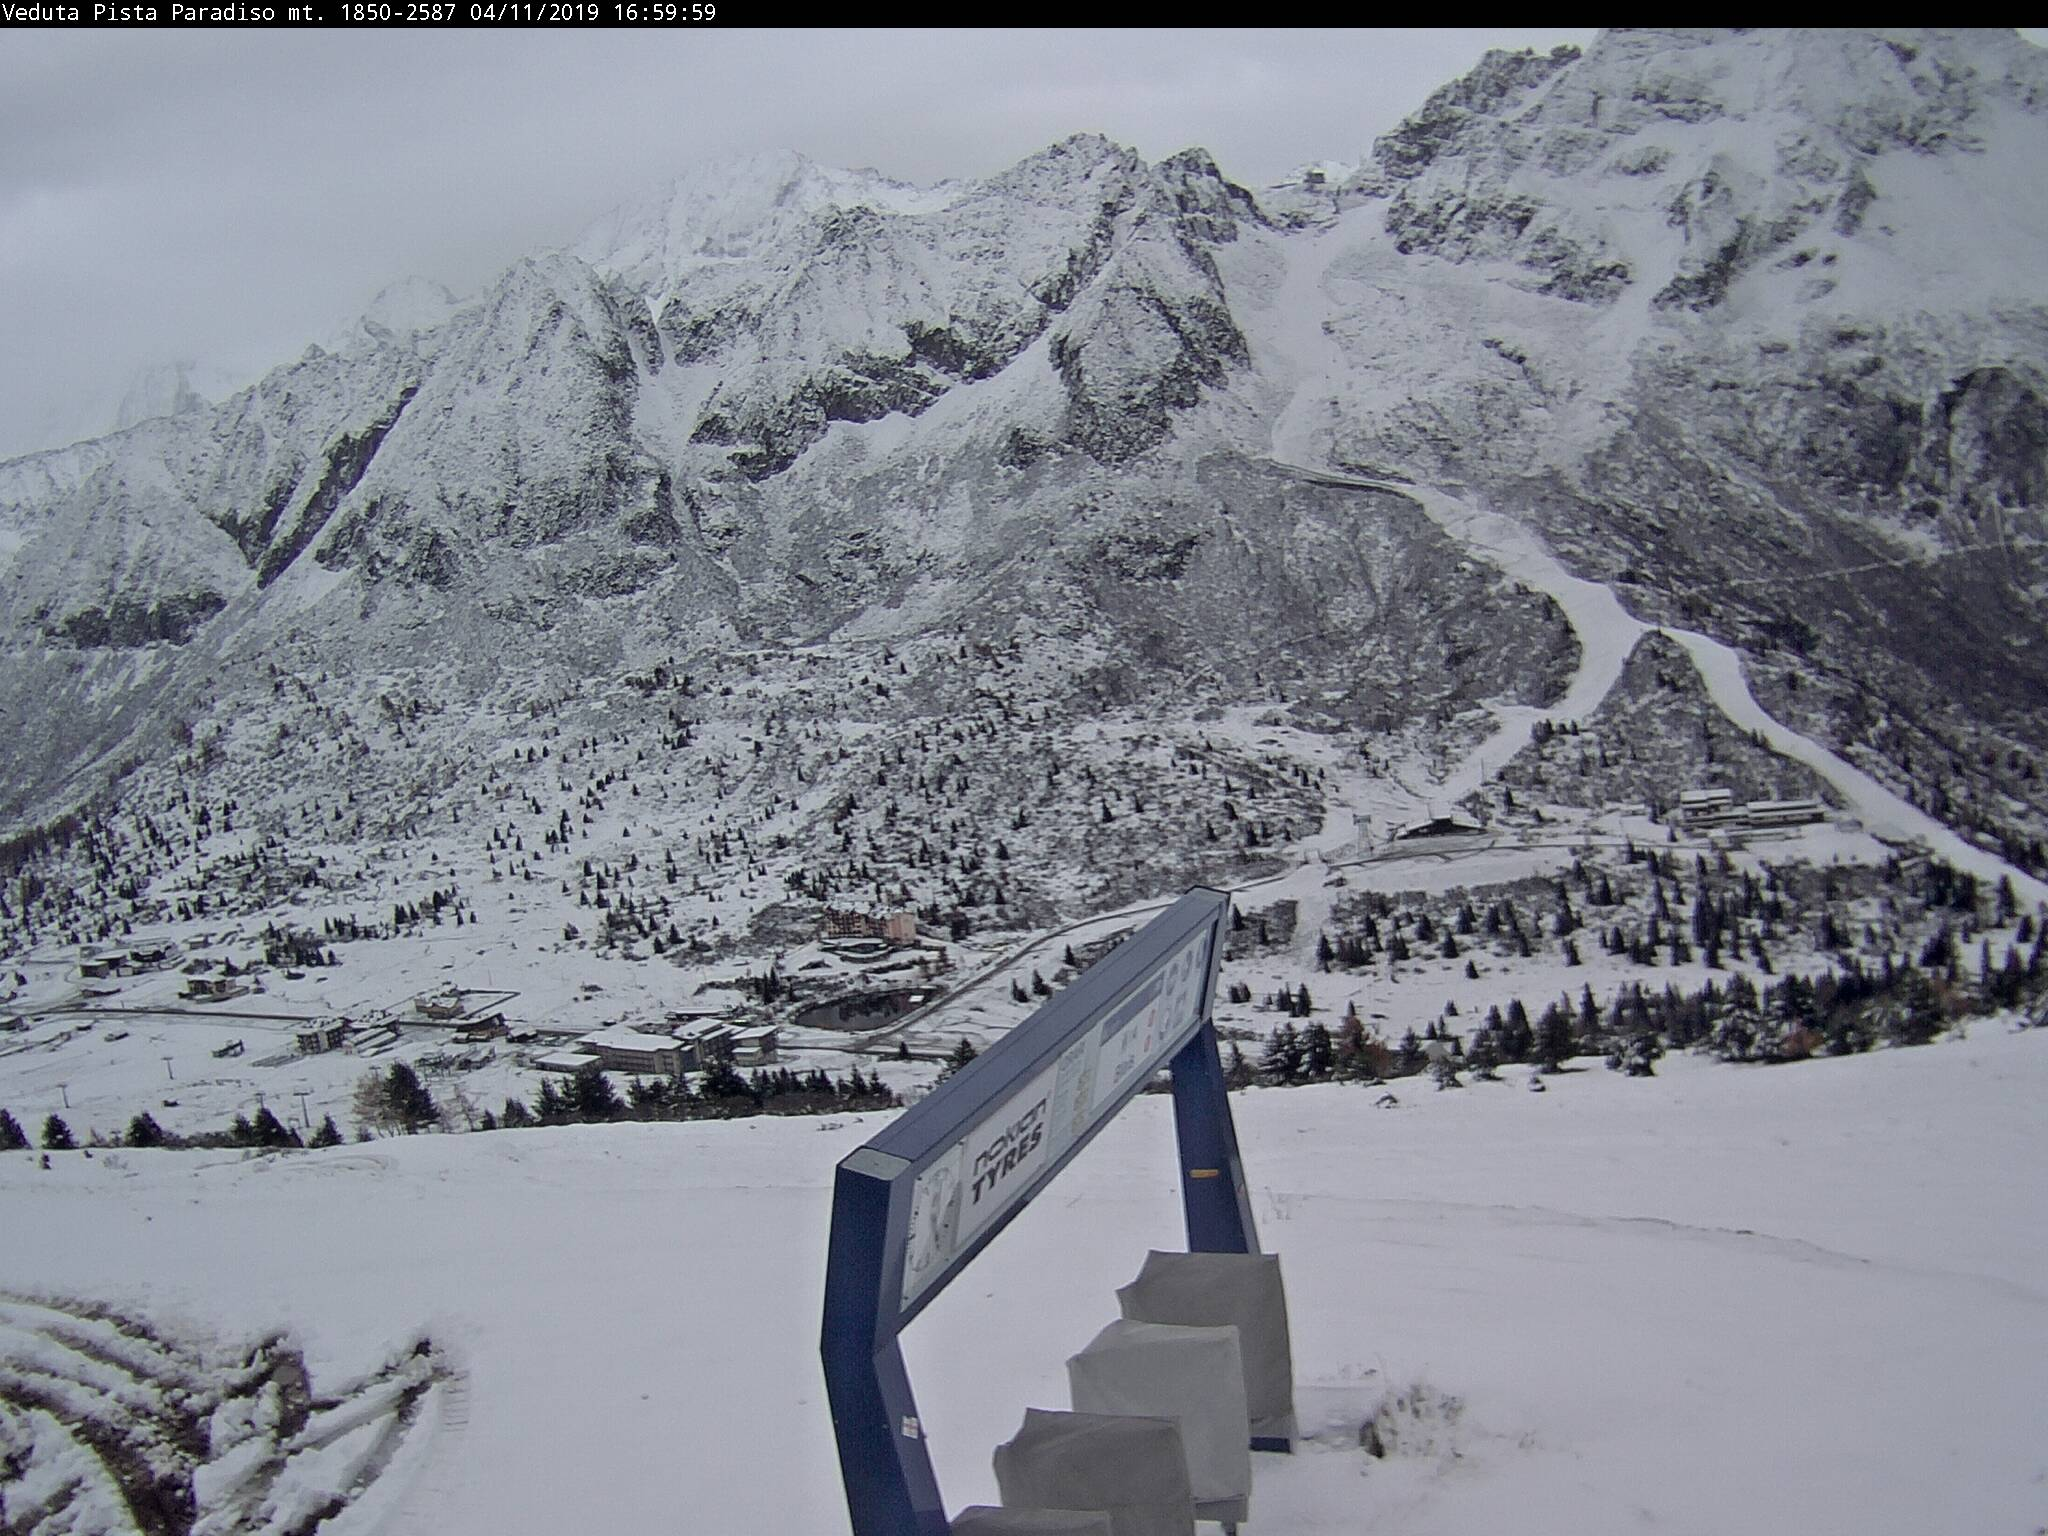 Webcam Panorama pista Paradiso